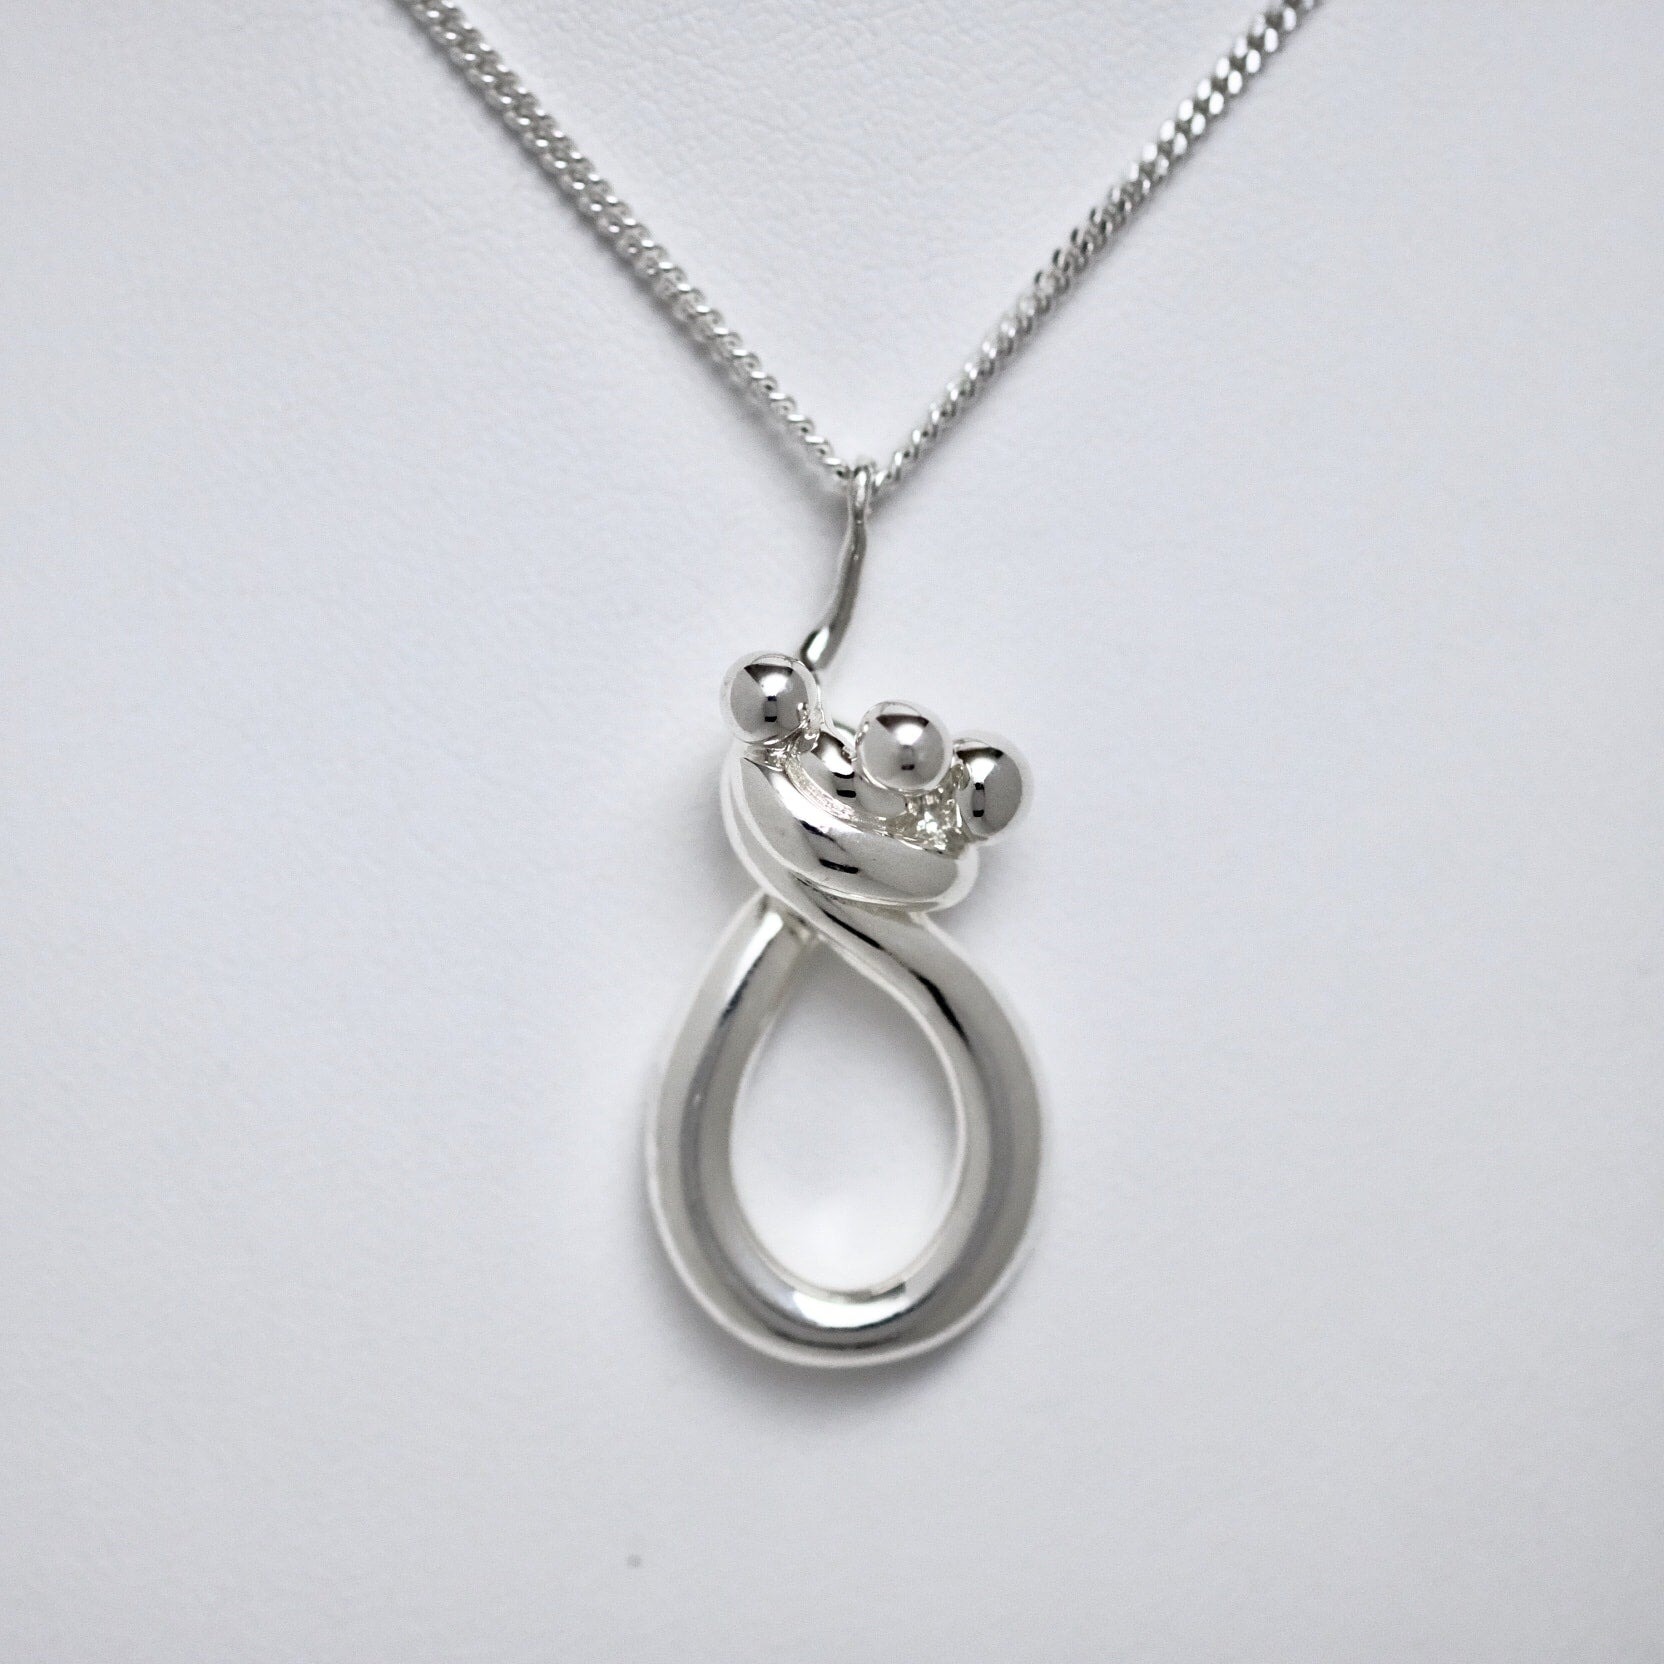 Mother & Two Children Line of Love sterling silver pendant by Joseph Chiang